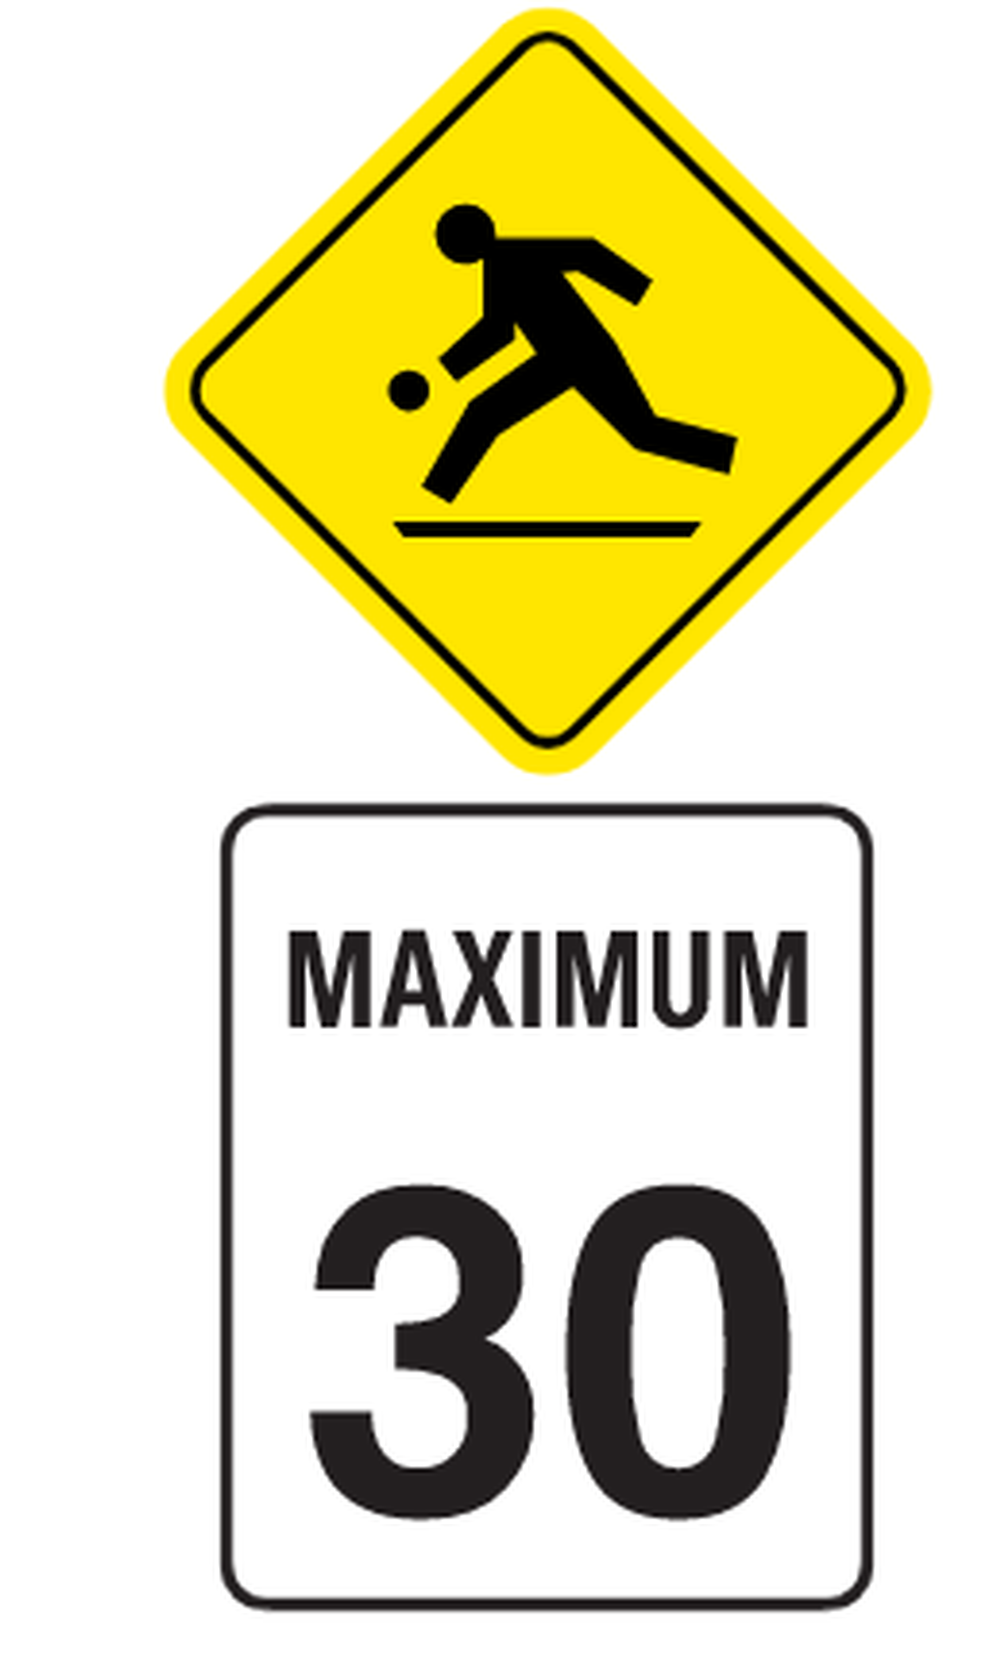 drivers-guide-playground-zone-30-km.png